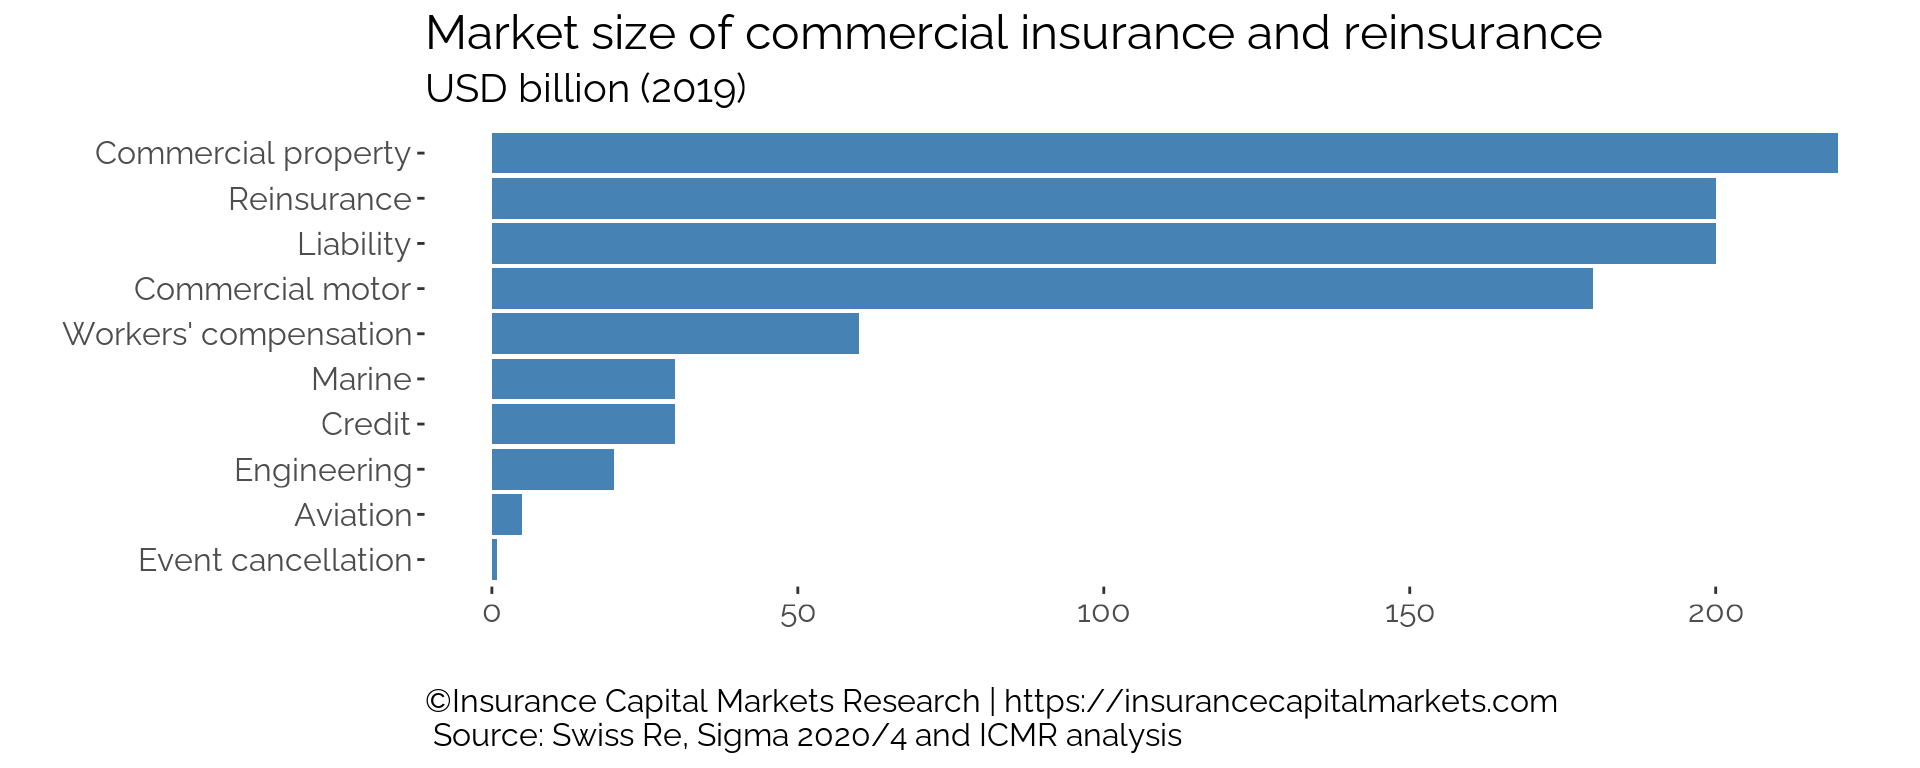 The global premium income for commercial insurance and reinsurance is c.USD 1.0 trillion, of which the RISX index component write c.USD 500 billion annually